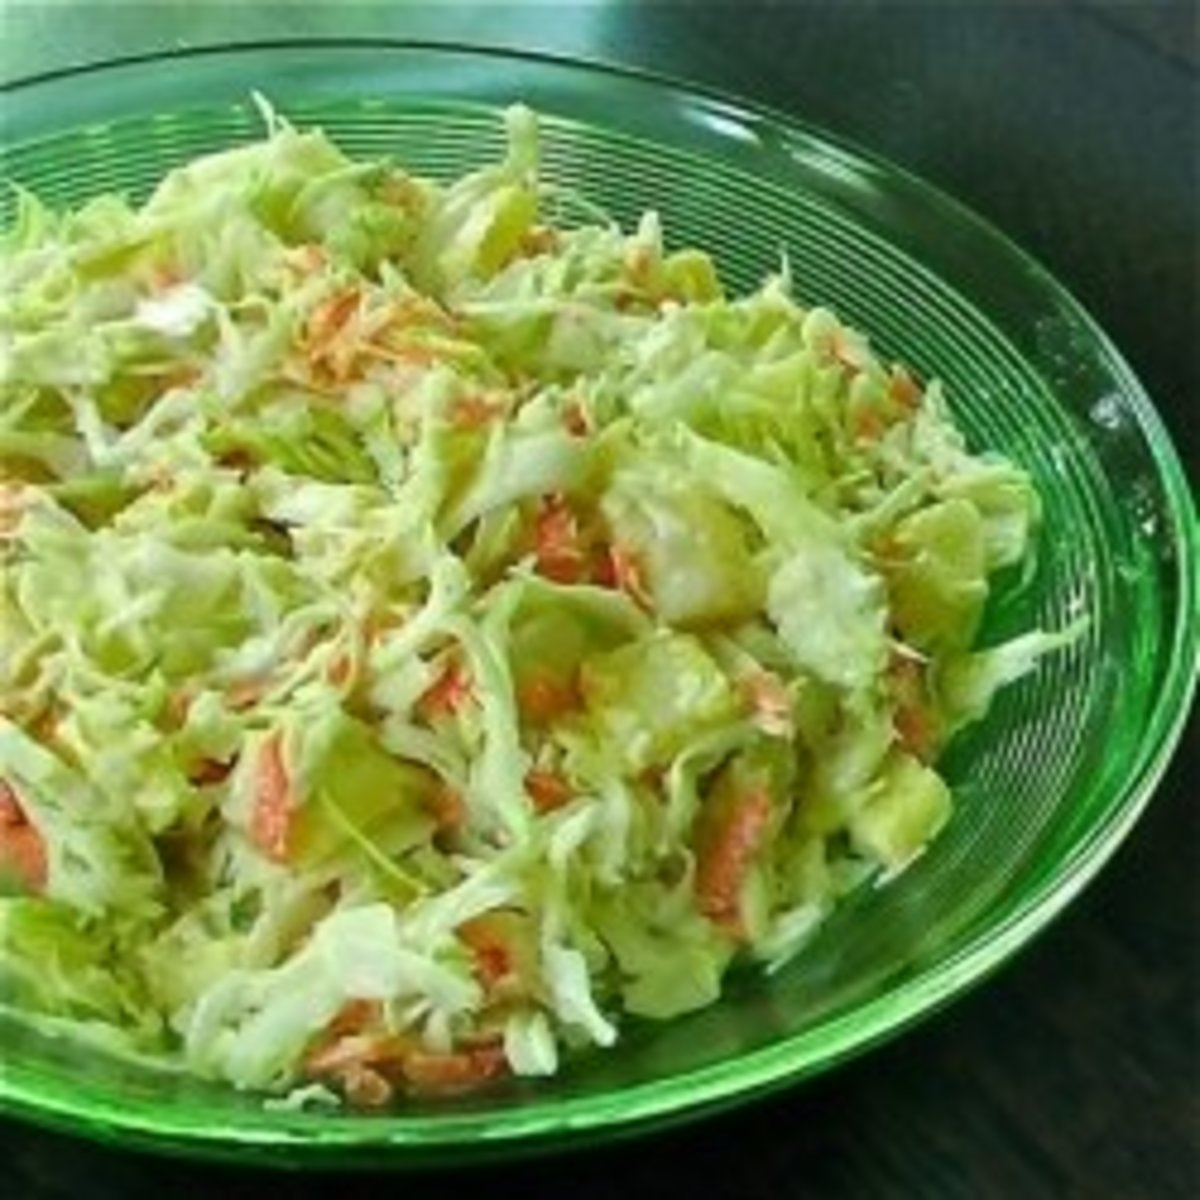 My mom's coleslaw recipe as made by me. The carrots and pineapple tidbits make this recipe delicious.